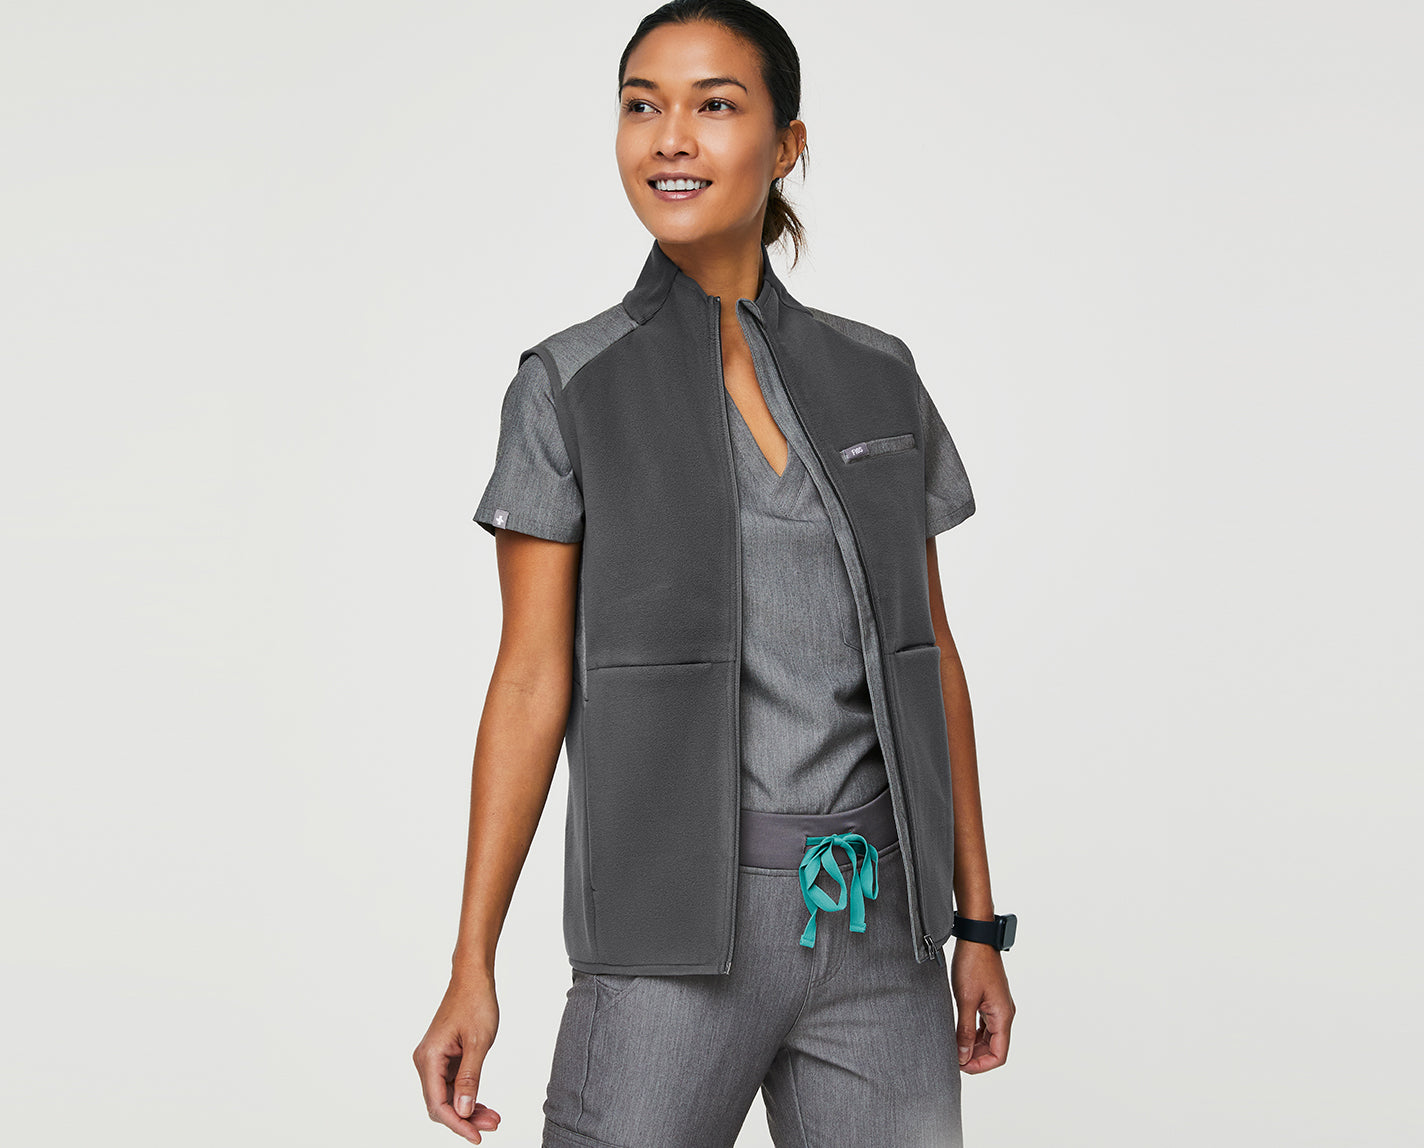 Clear eyes. Warm Core. Can't lose. Our full-zip On-Shift Vest keeps your core warm without limiting your range of motion. Plus, it features a contrasting front panel and back yoke made from our proprietary FIONx fabric so that it matches your scrubs perfectly.